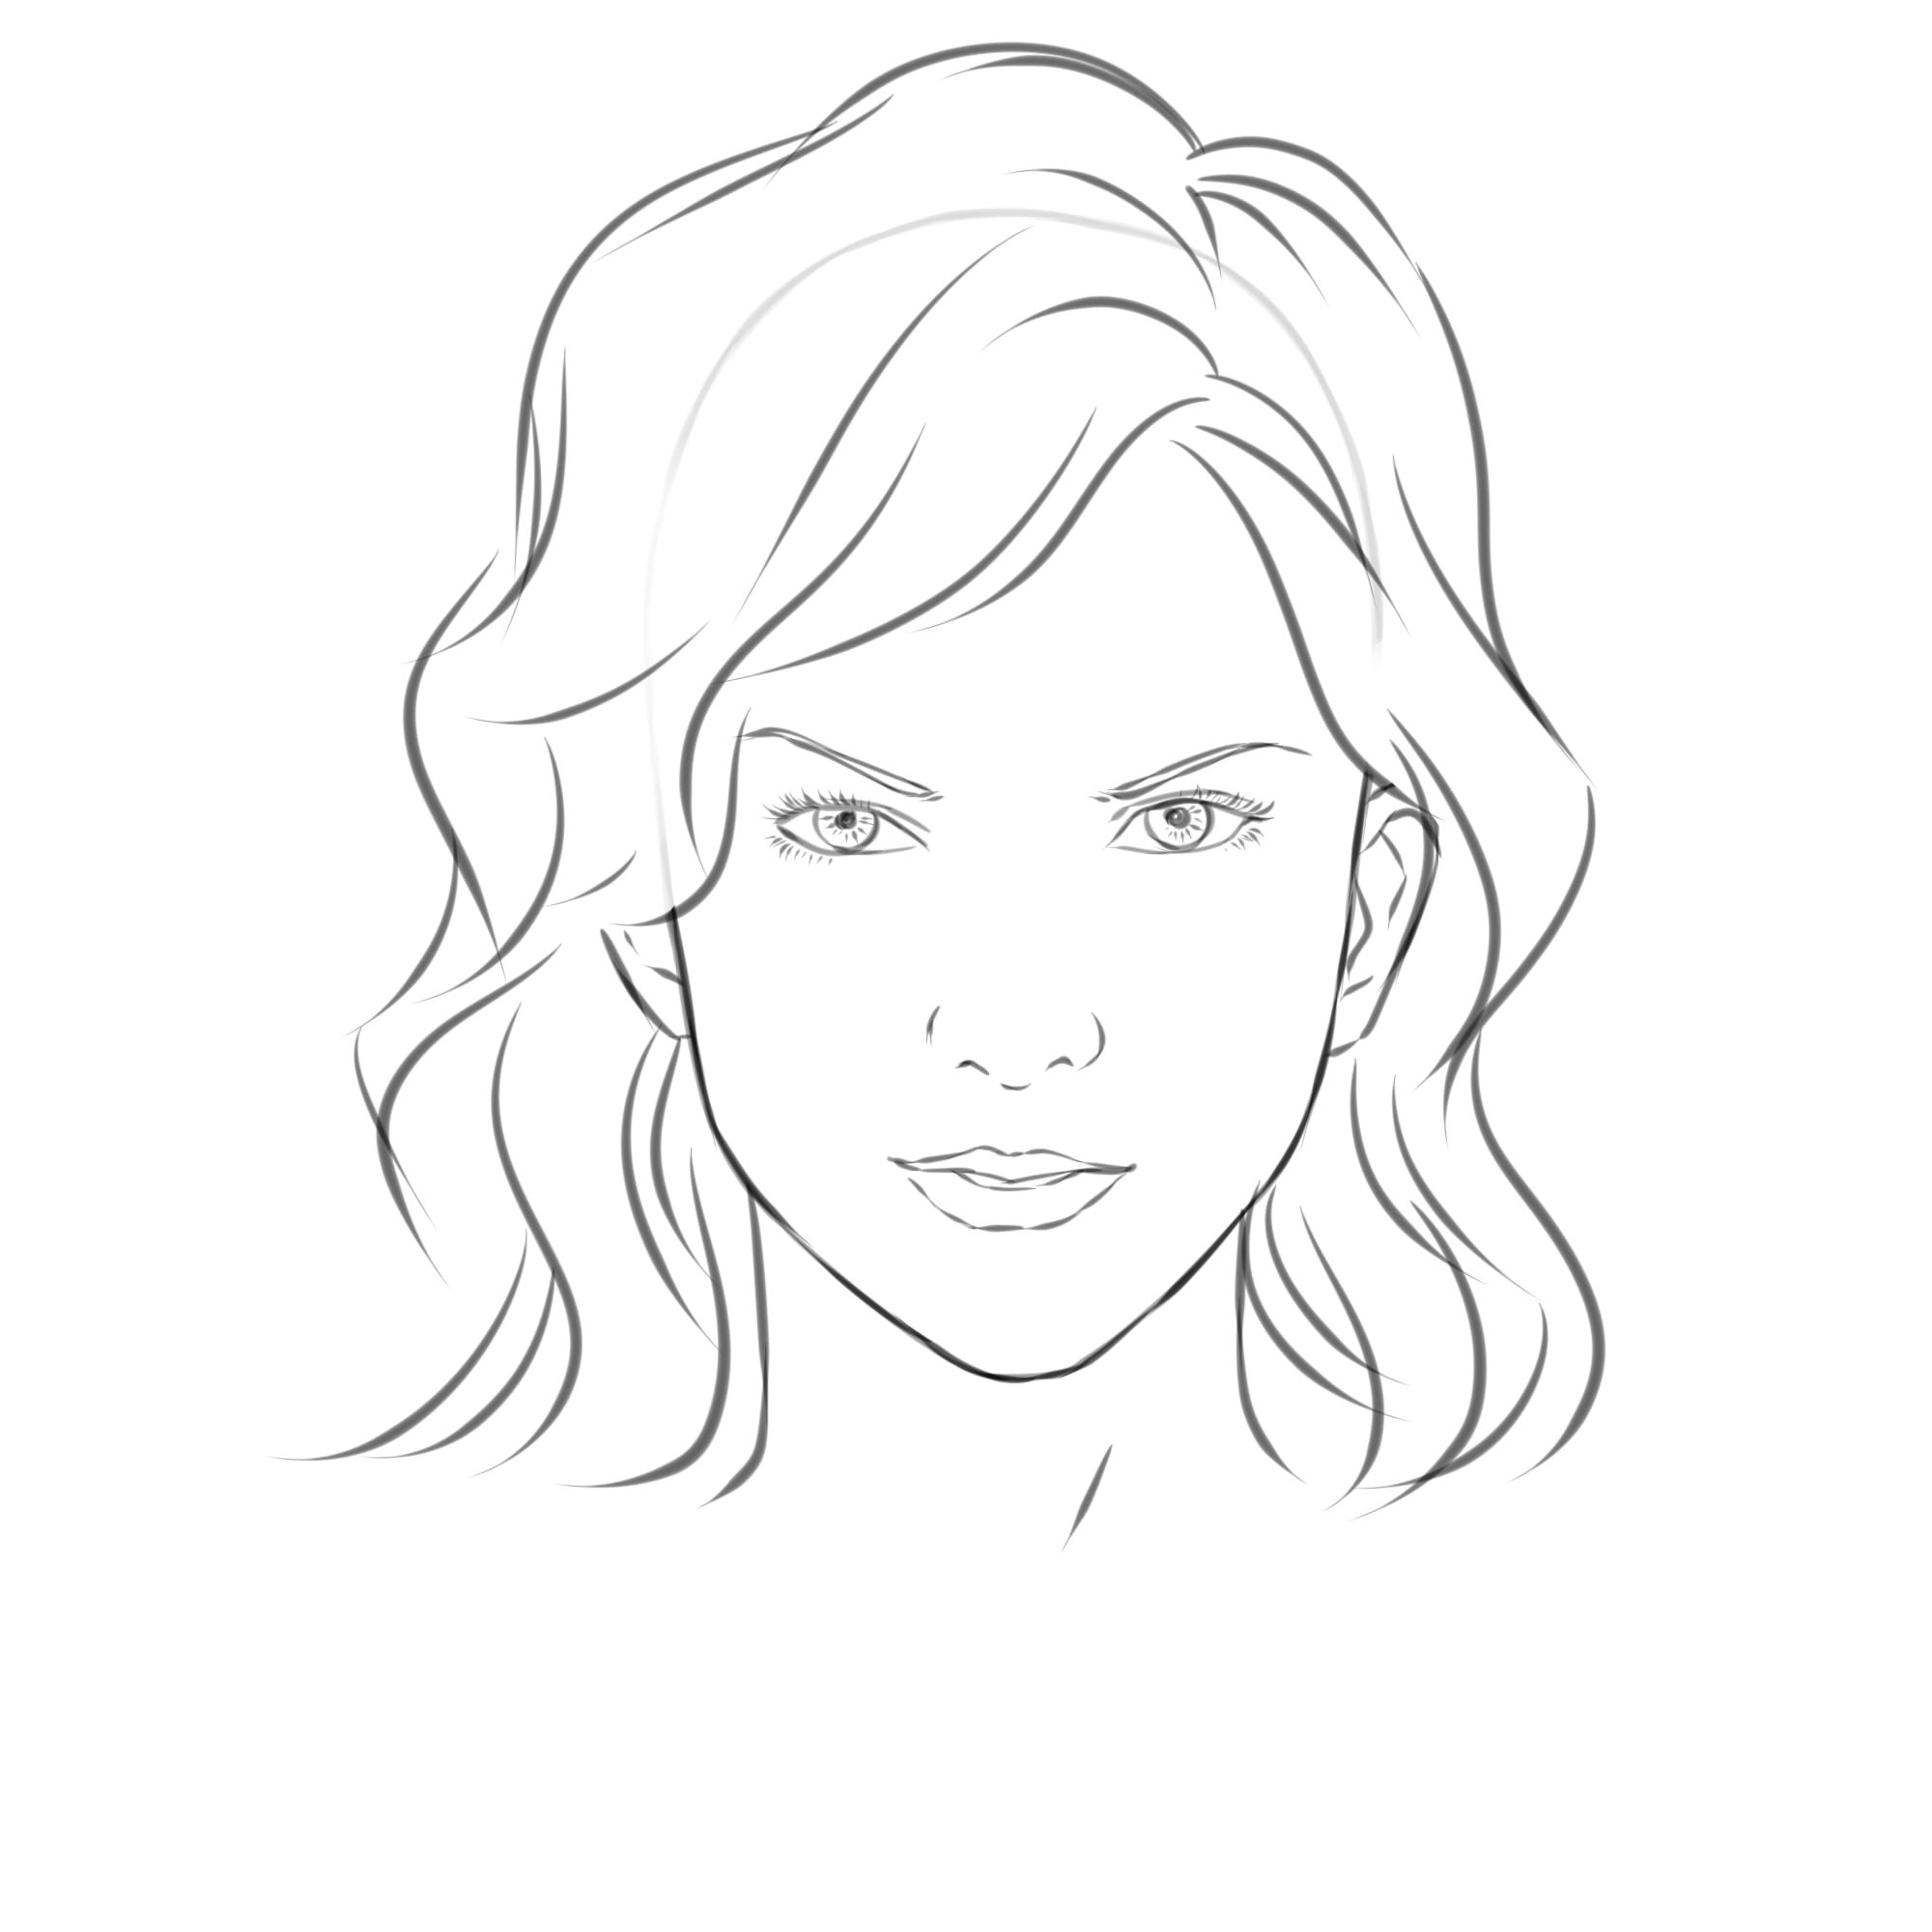 2000x2000 Girl Face Drawing Step By Step Girl Face Sketch Step By Step